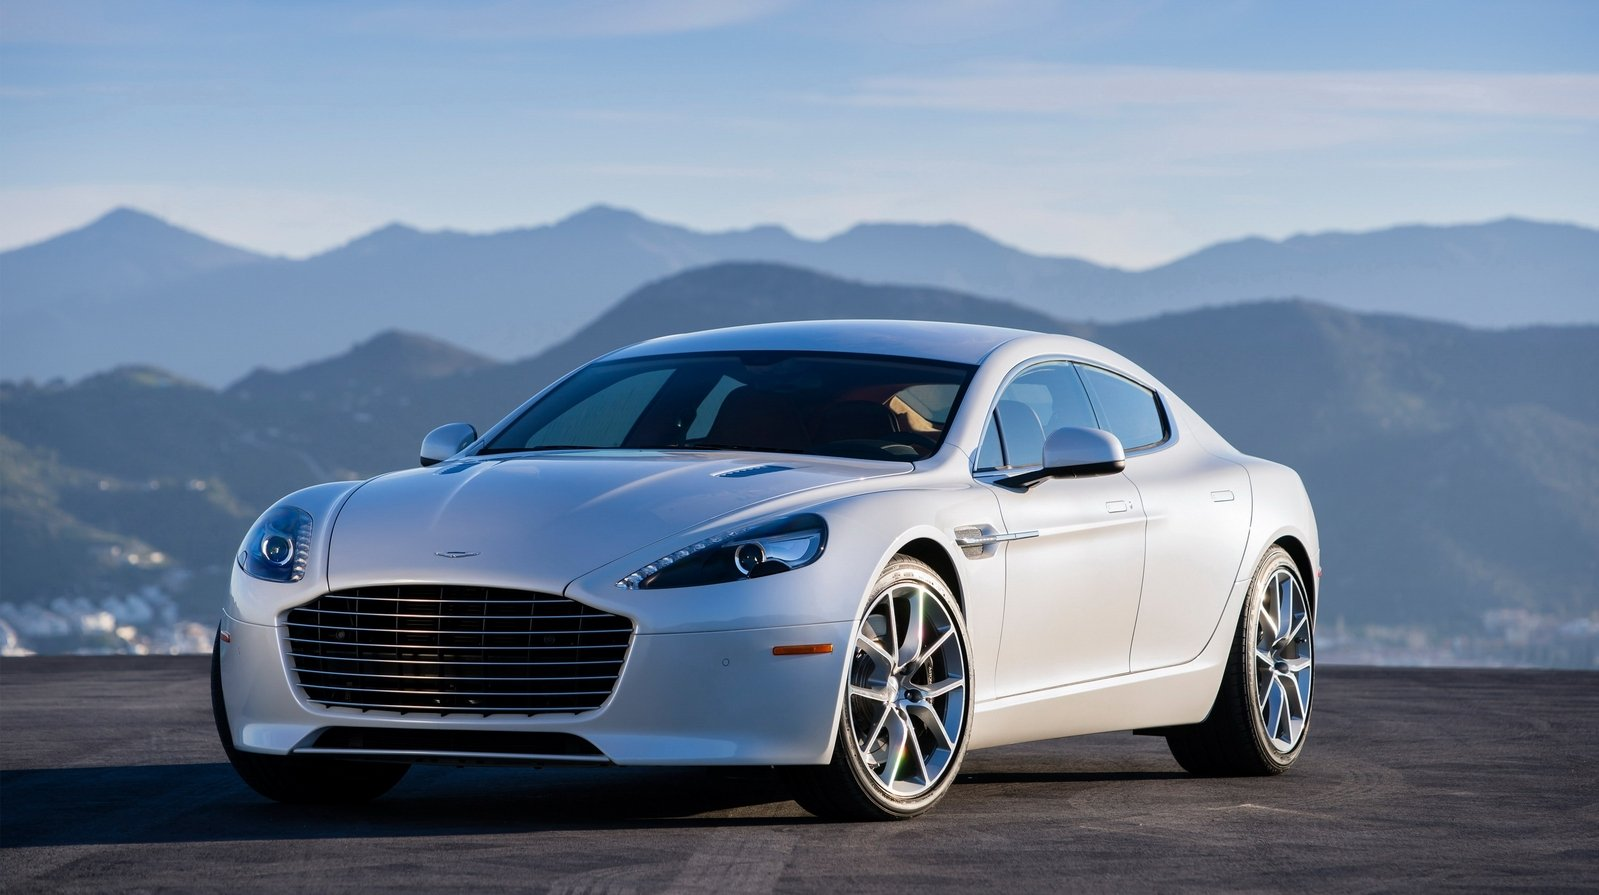 2014 - 2015 aston martin rapide s review - top speed